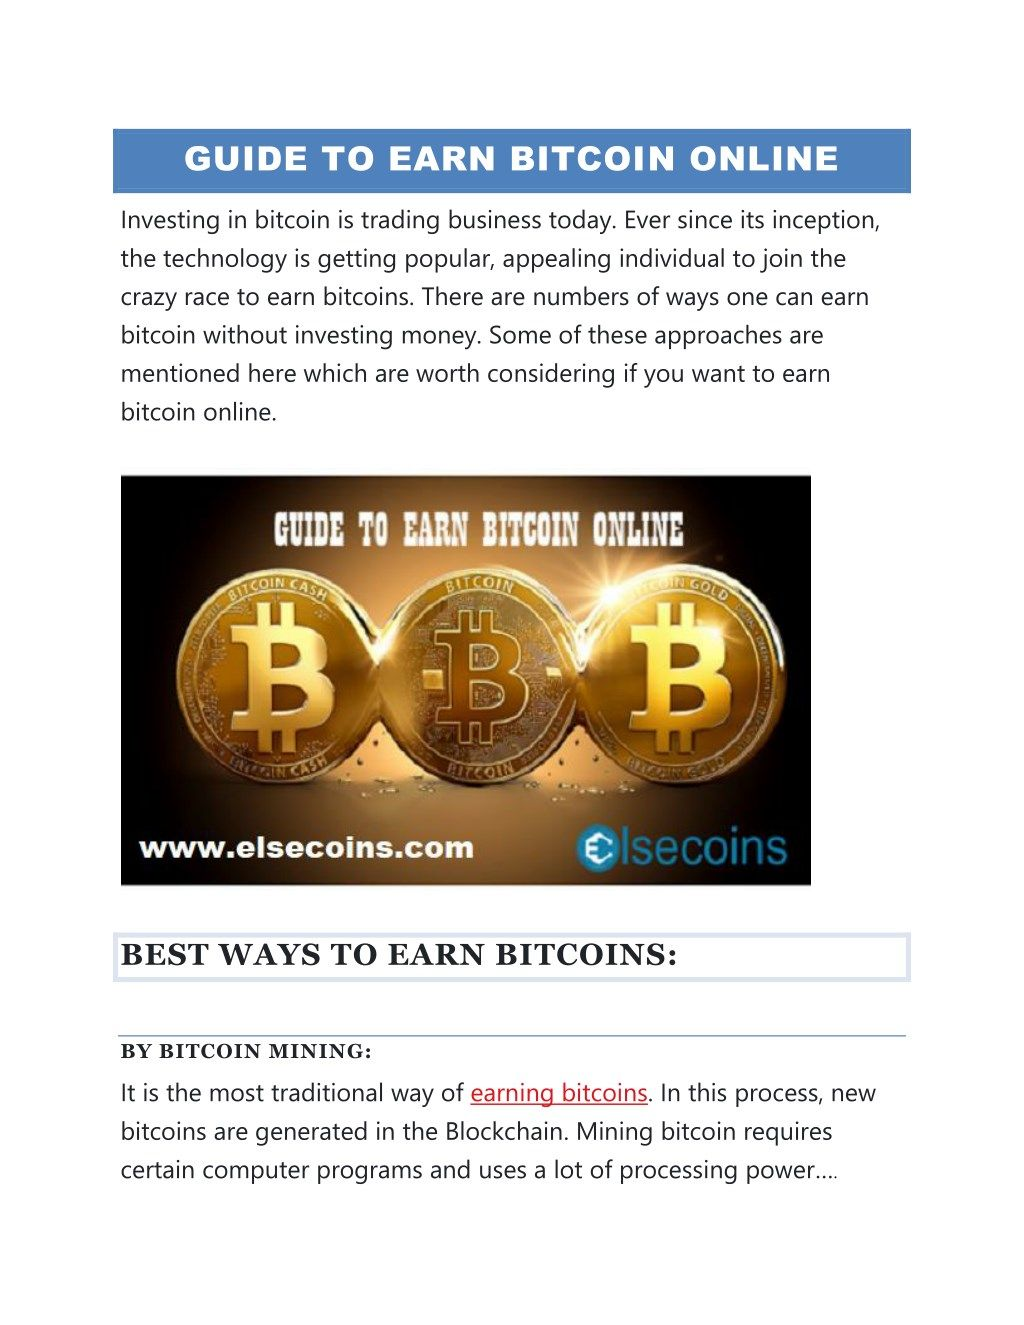 Earning bitcoins without mining guide online sports betting legal pain